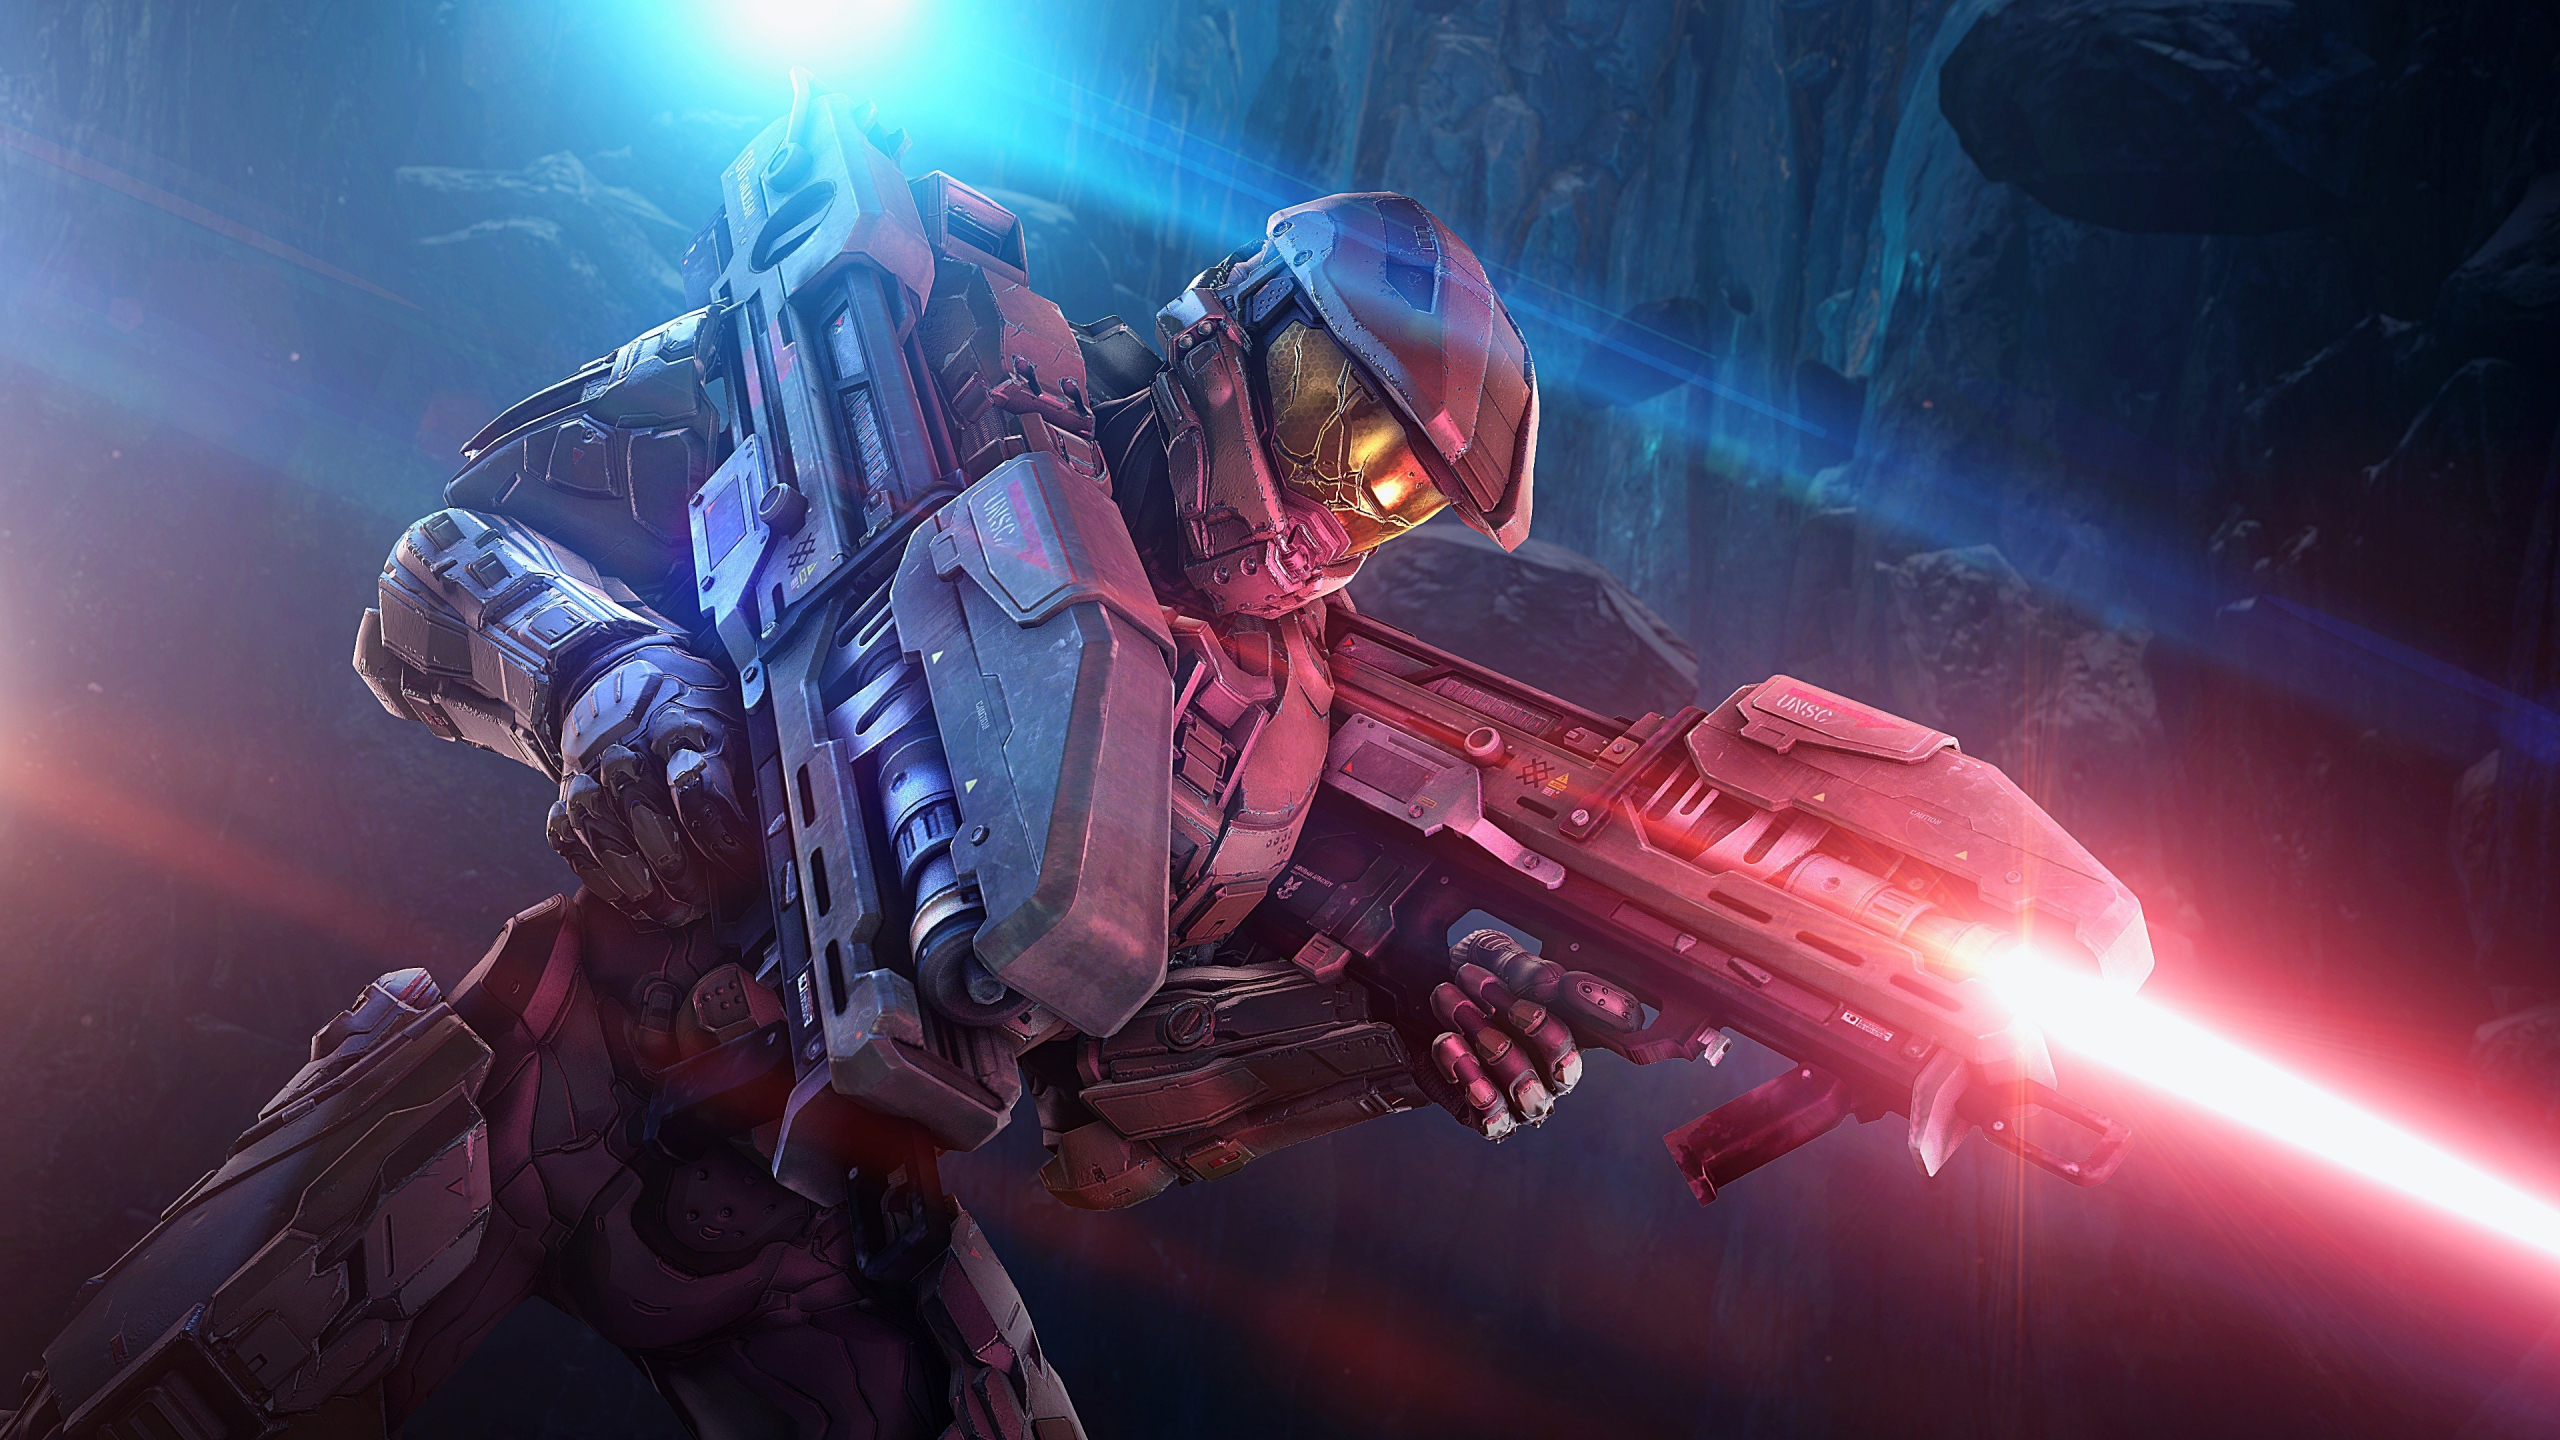 Download 2560x1440 Wallpaper Master Chief Modern Armour